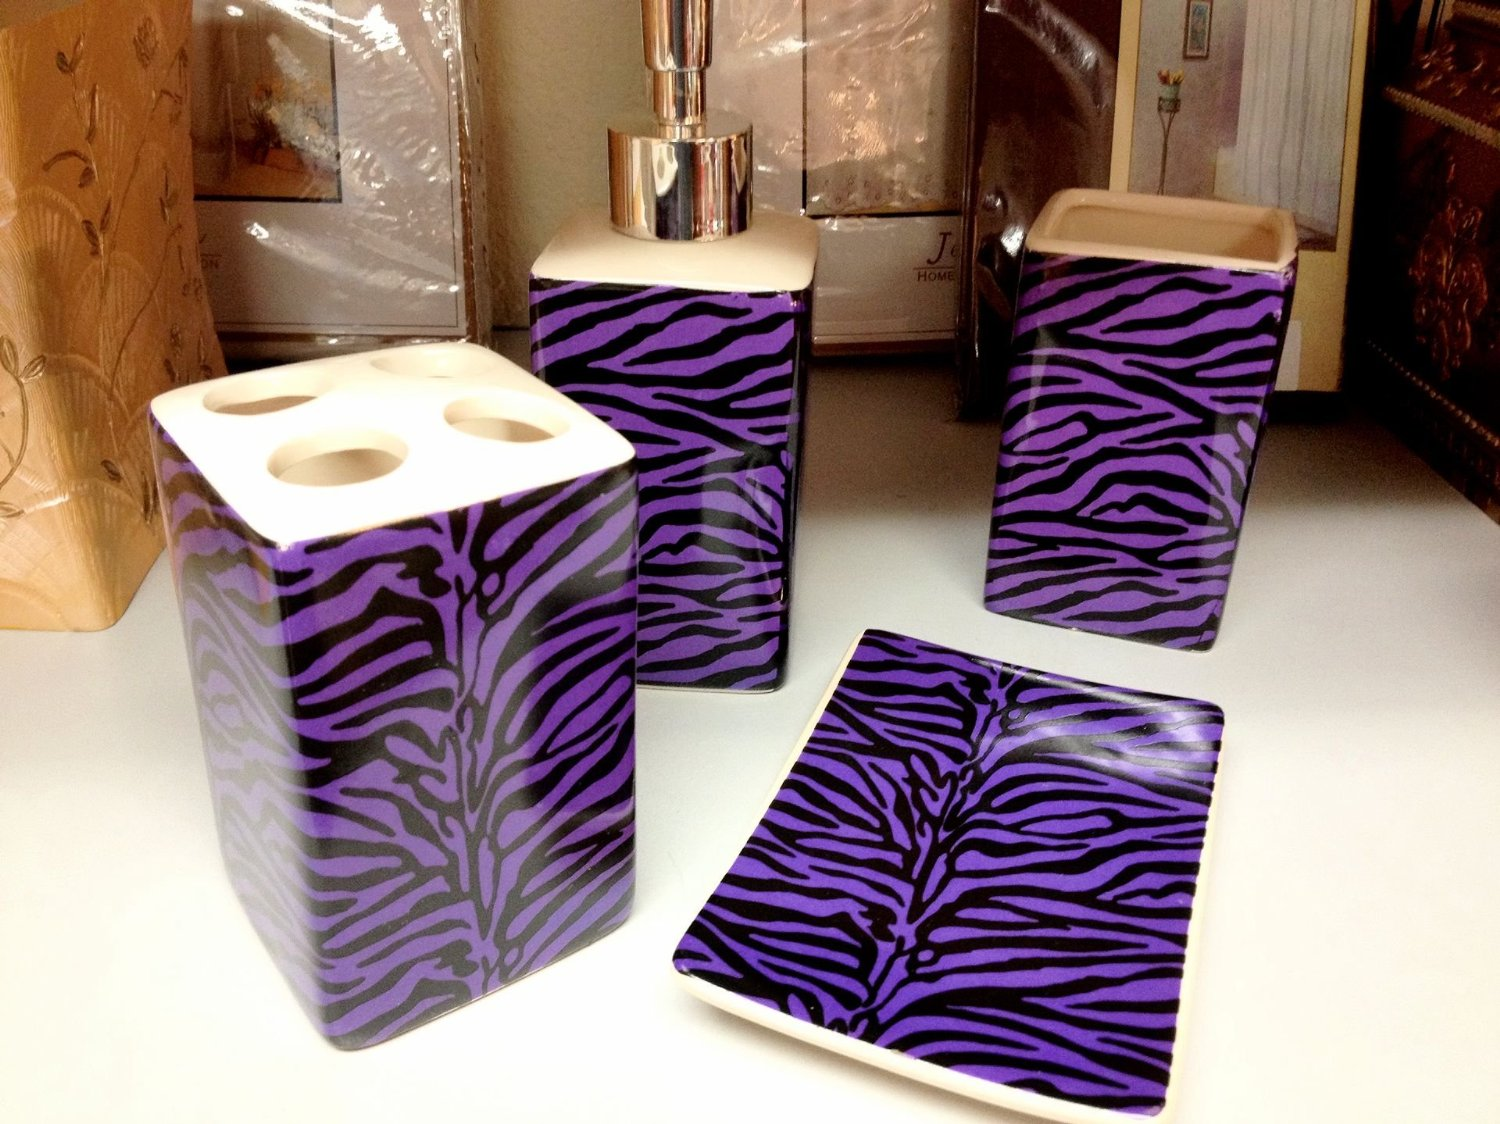 Purple Zebra Print Ceramic Bathroom